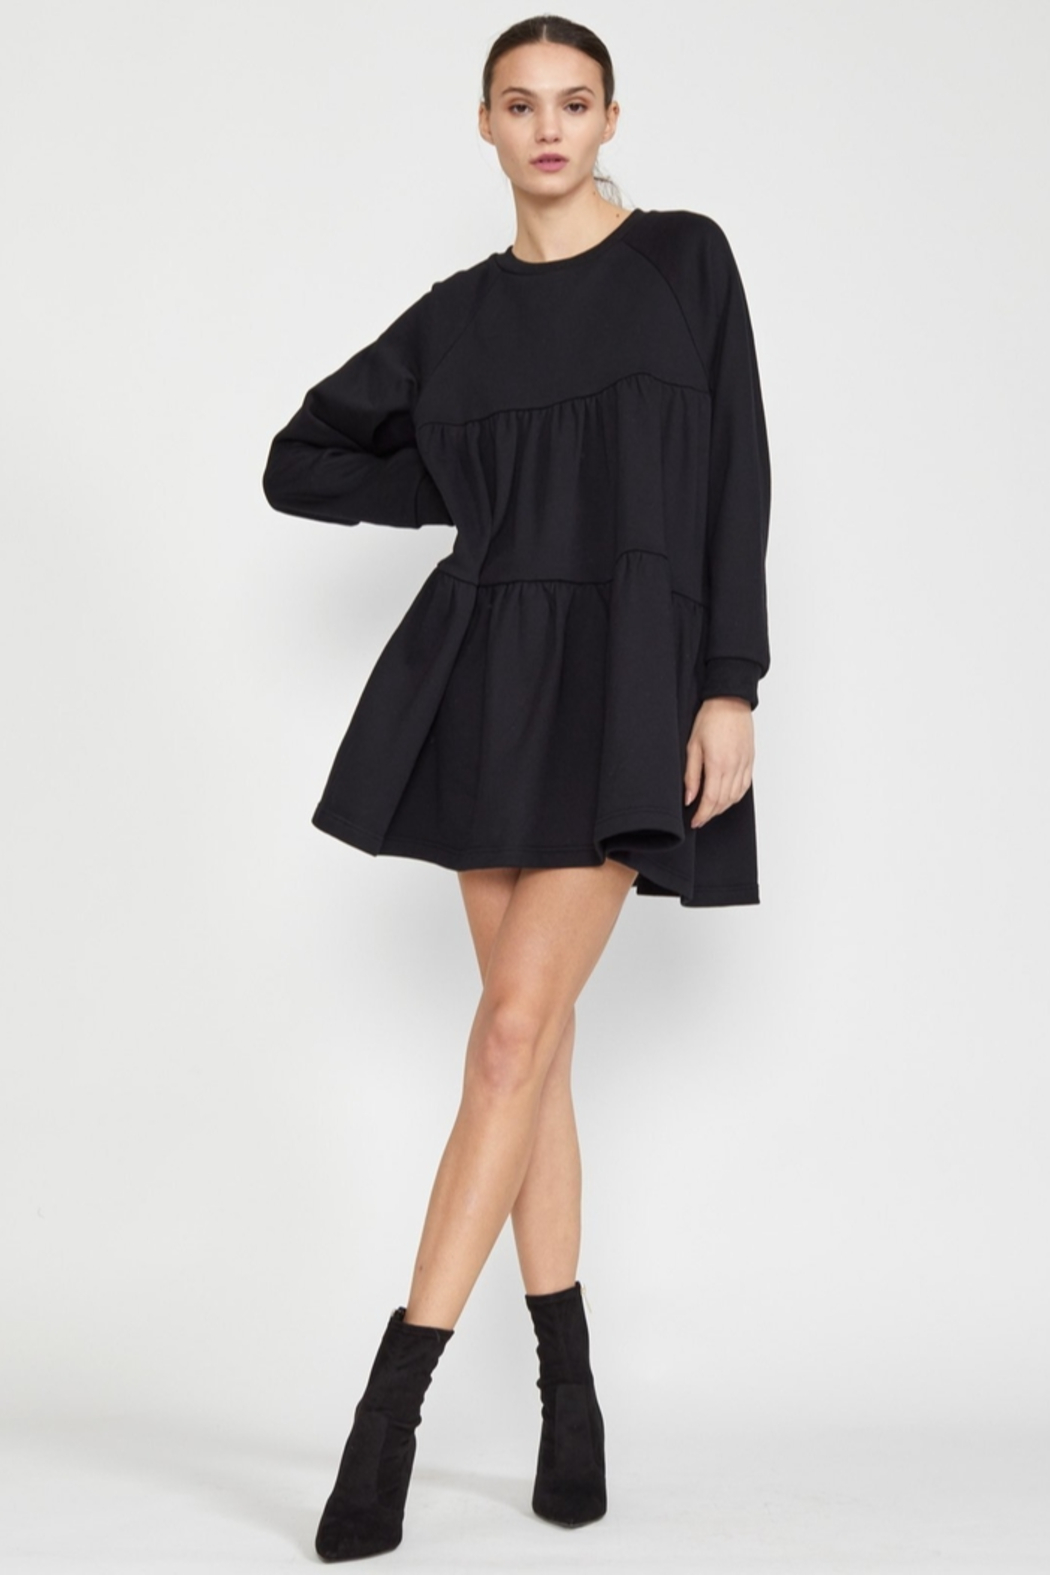 Cynthia Rowley Vail Cozy Swing Dress - Front Full Image